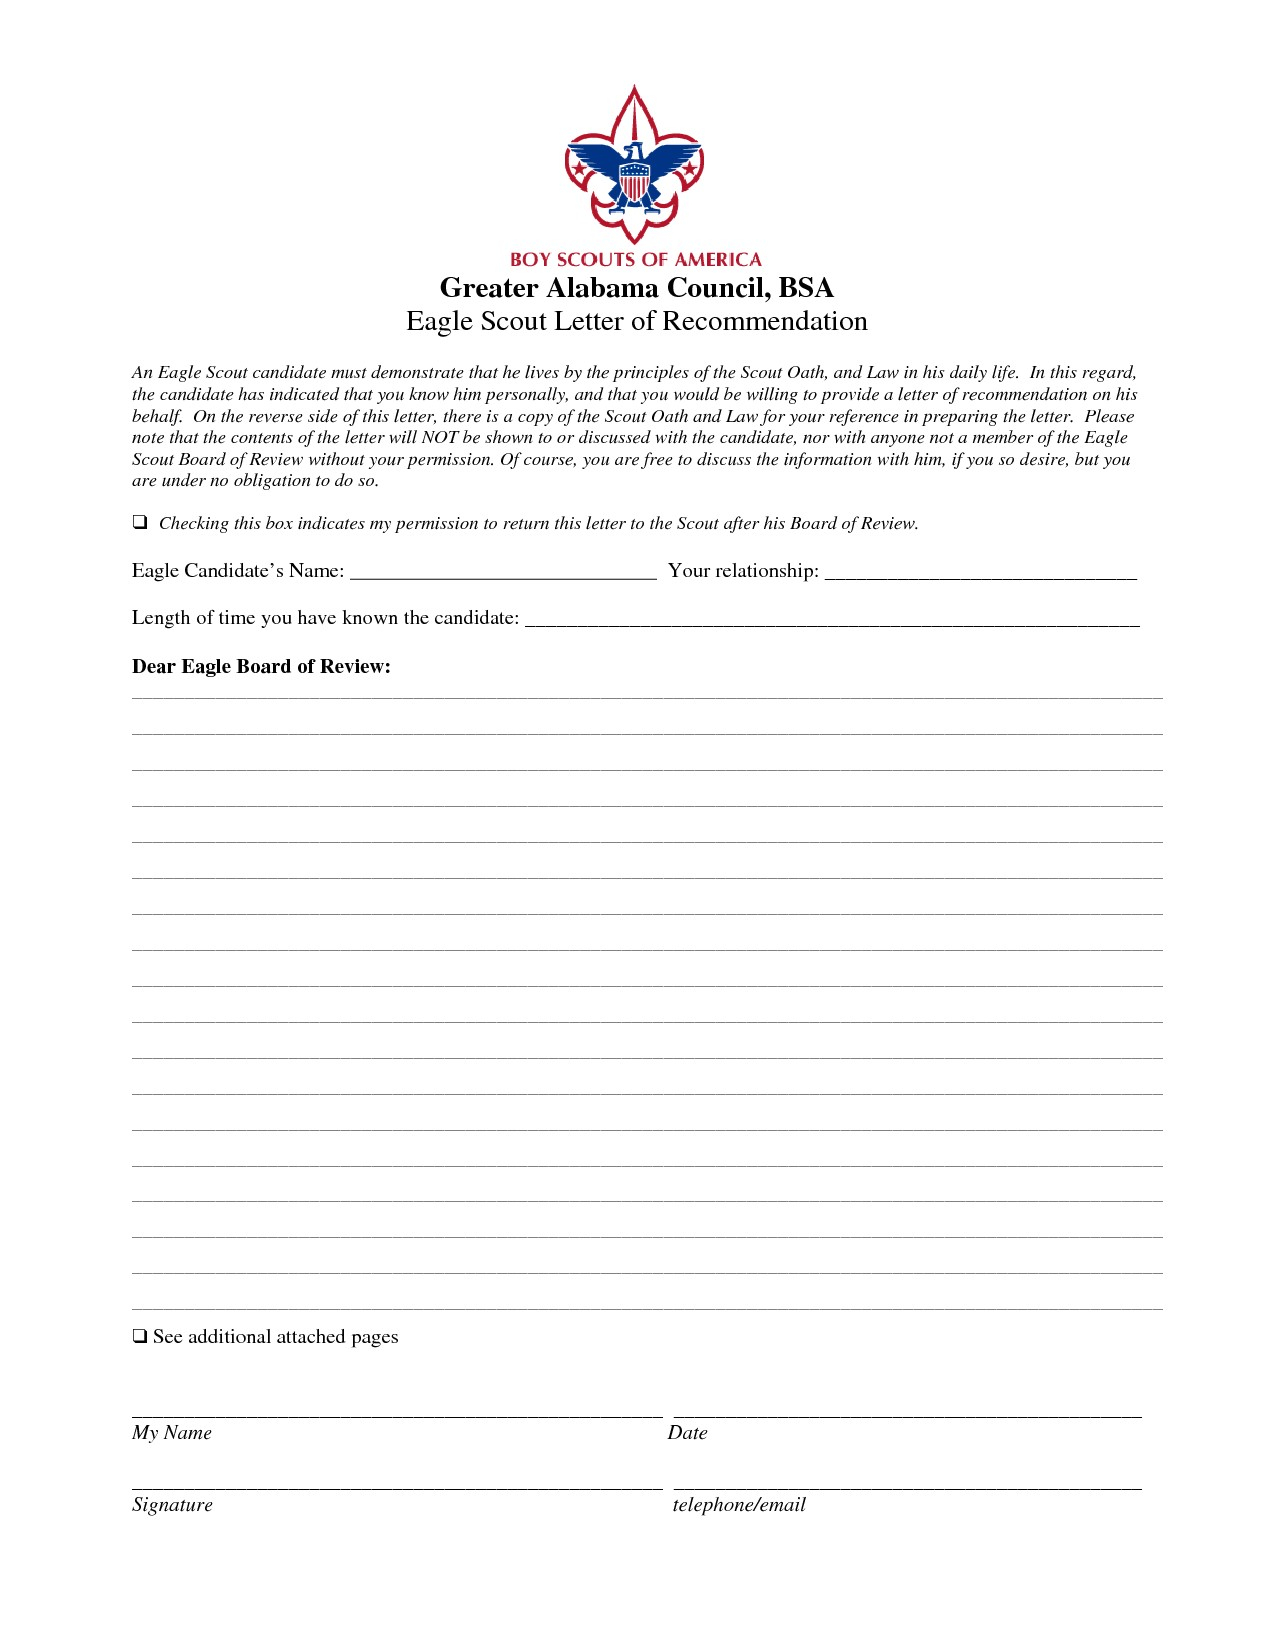 eagle scout recommendation letter template